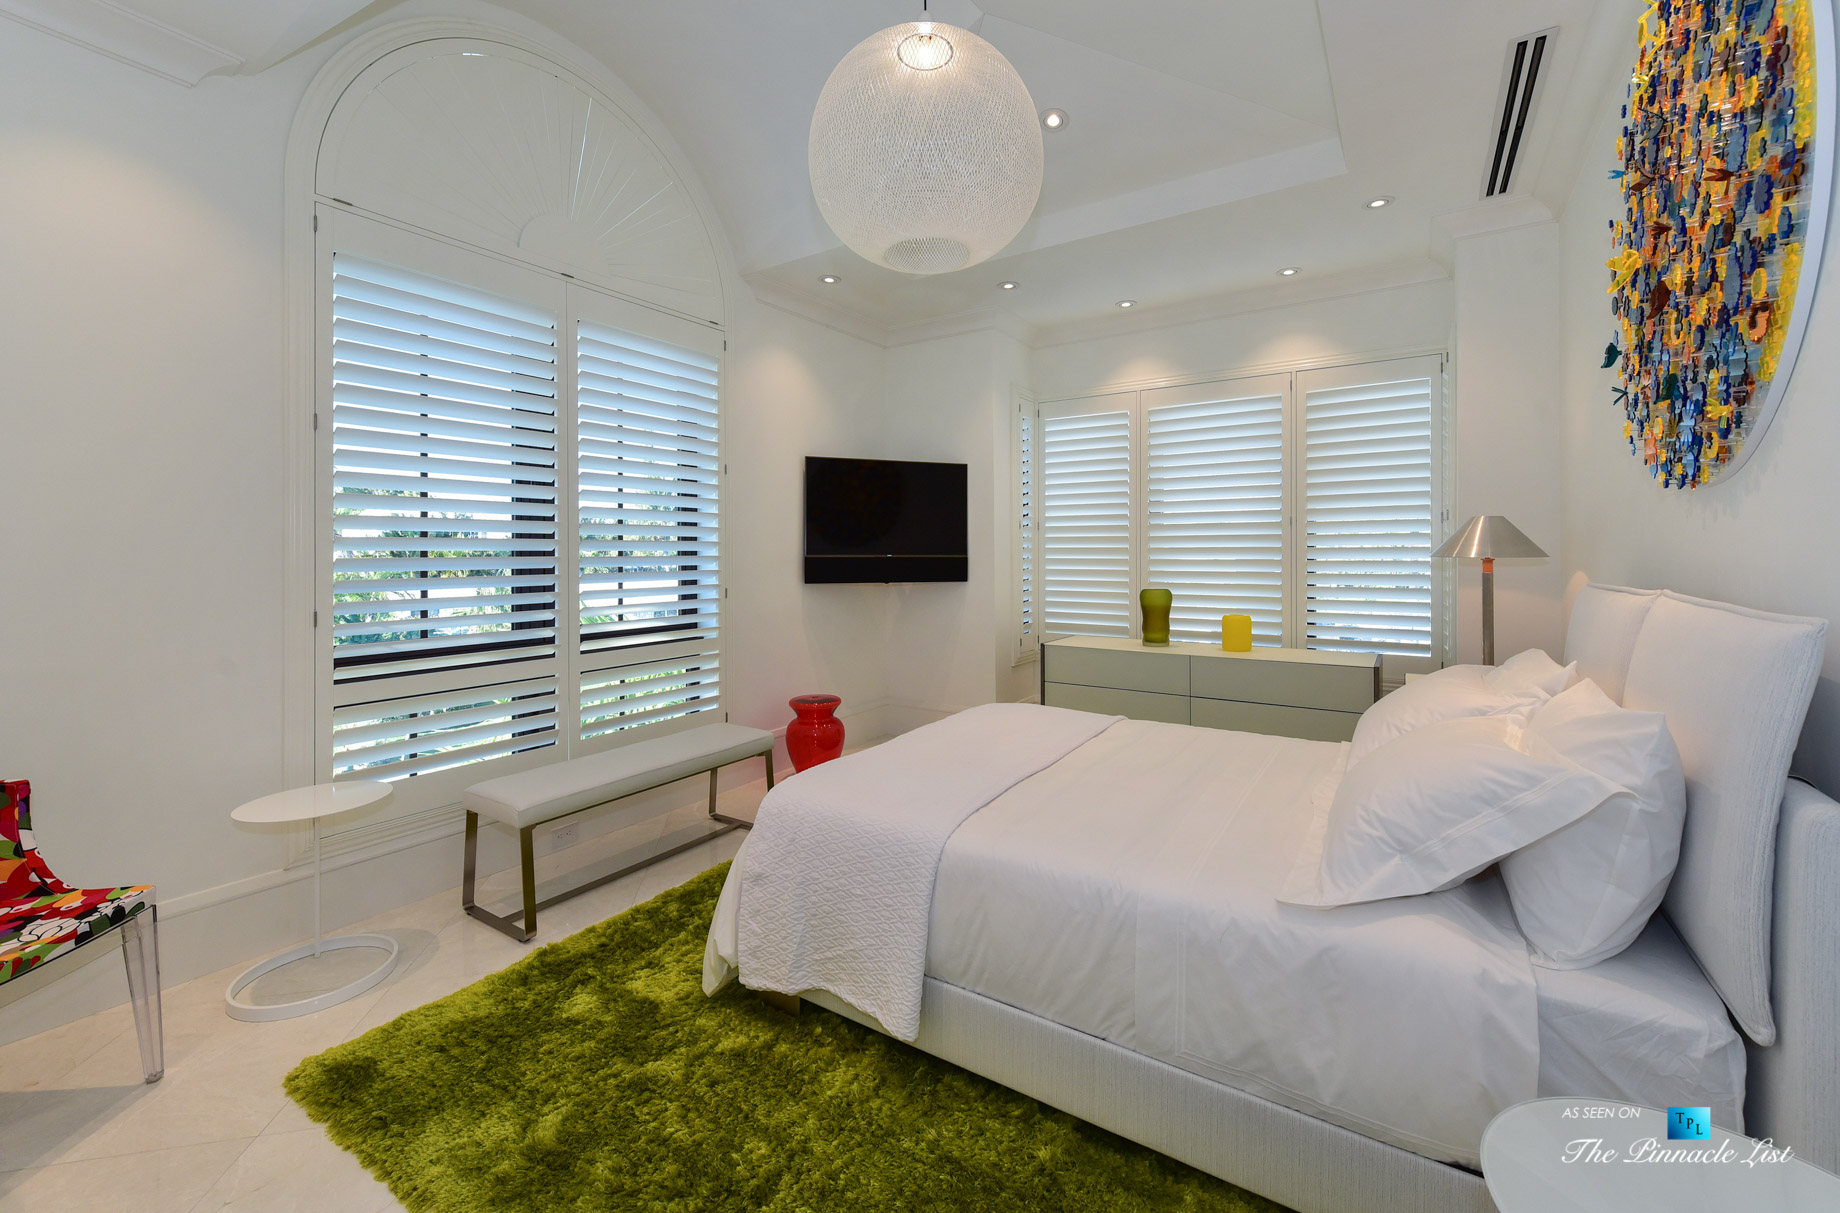 103 Andros Rd, Key Largo, FL, USA - Bedroom - Luxury Real Estate - Ocean Reef Club Home